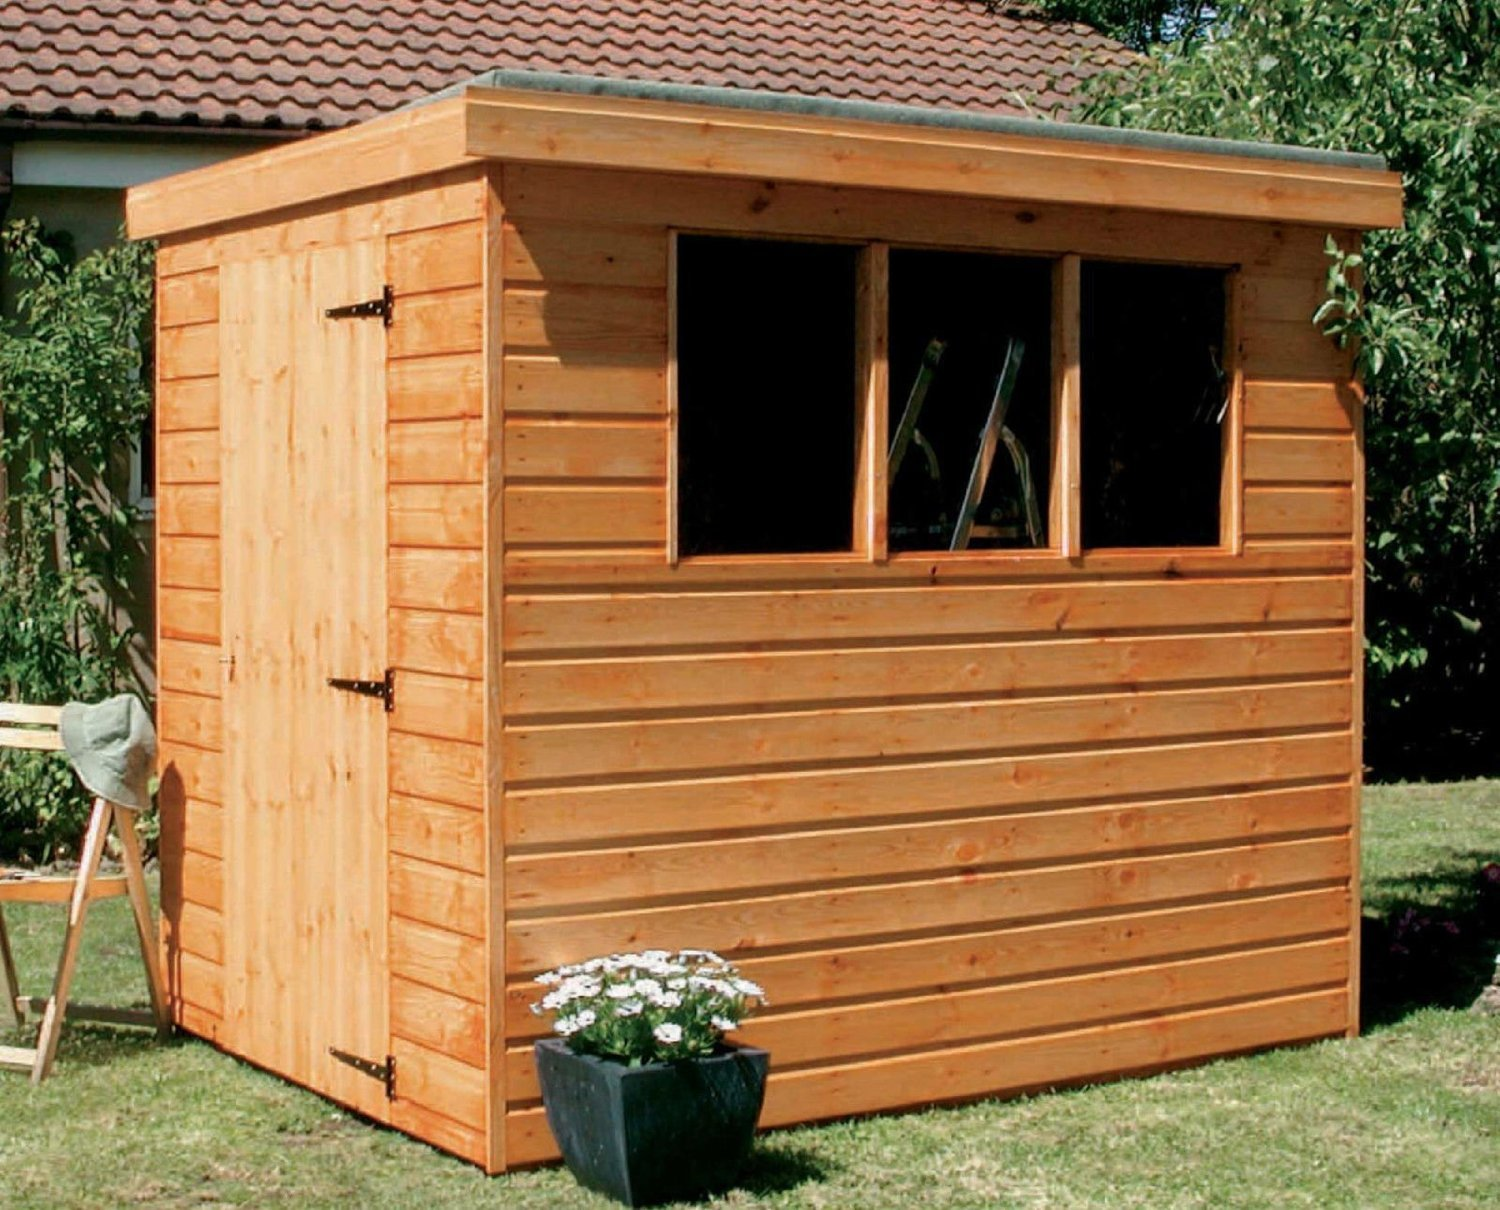 6x5 pent garden shed heavy duty tongue groove wood amazoncouk kitchen home